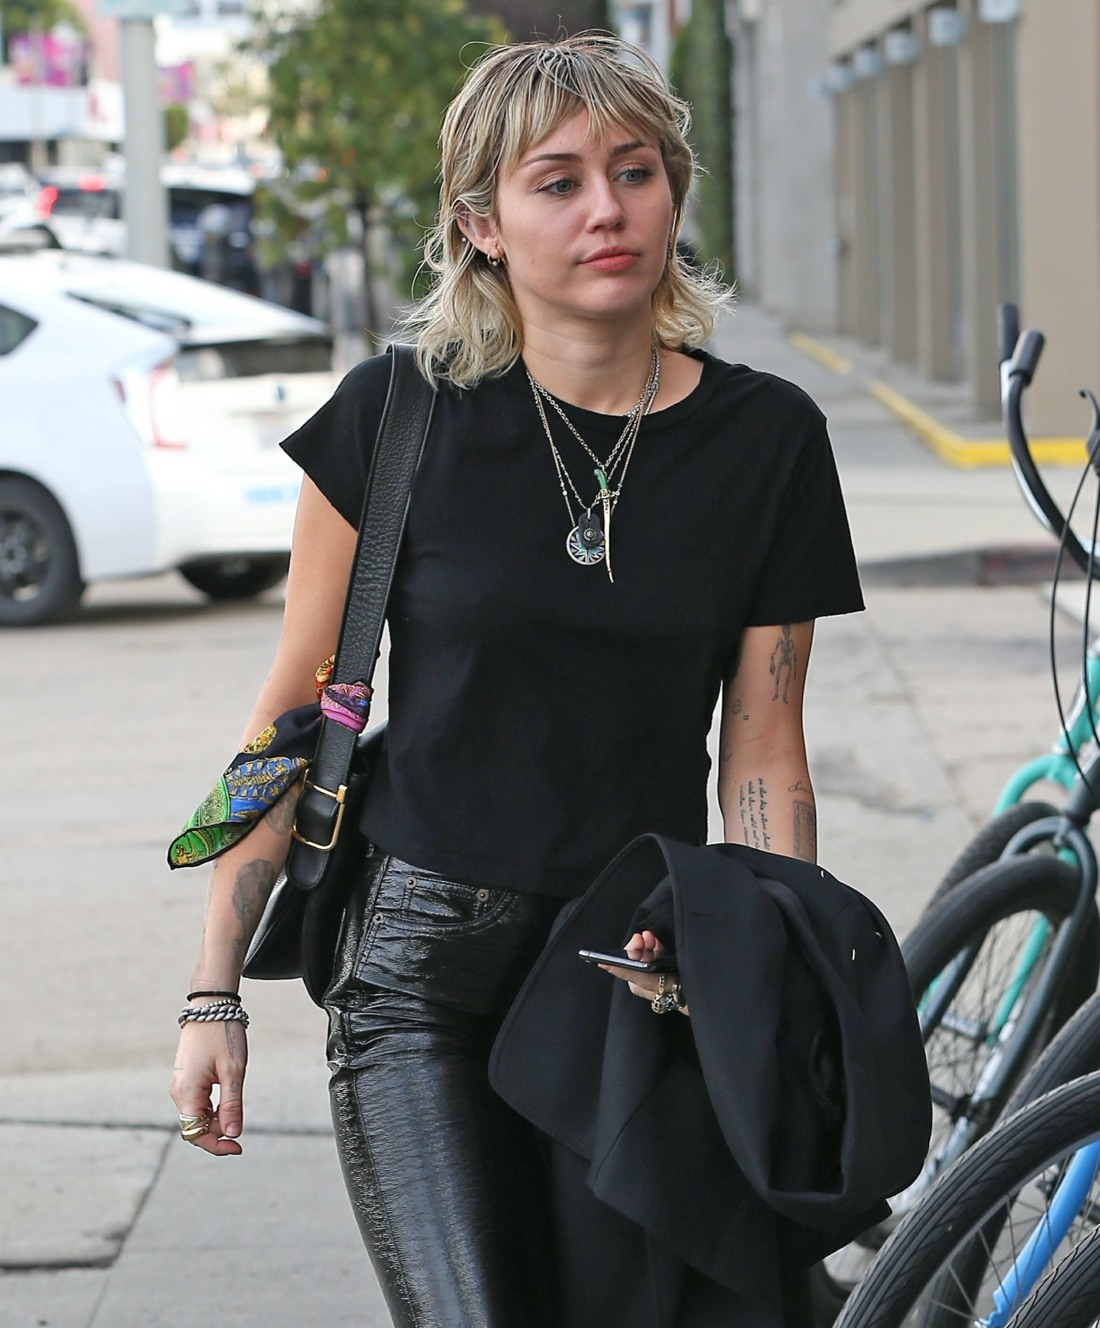 Miley Cyrus is looking relaxed and positive as she heads to the studio for a recording session in West Hollywood